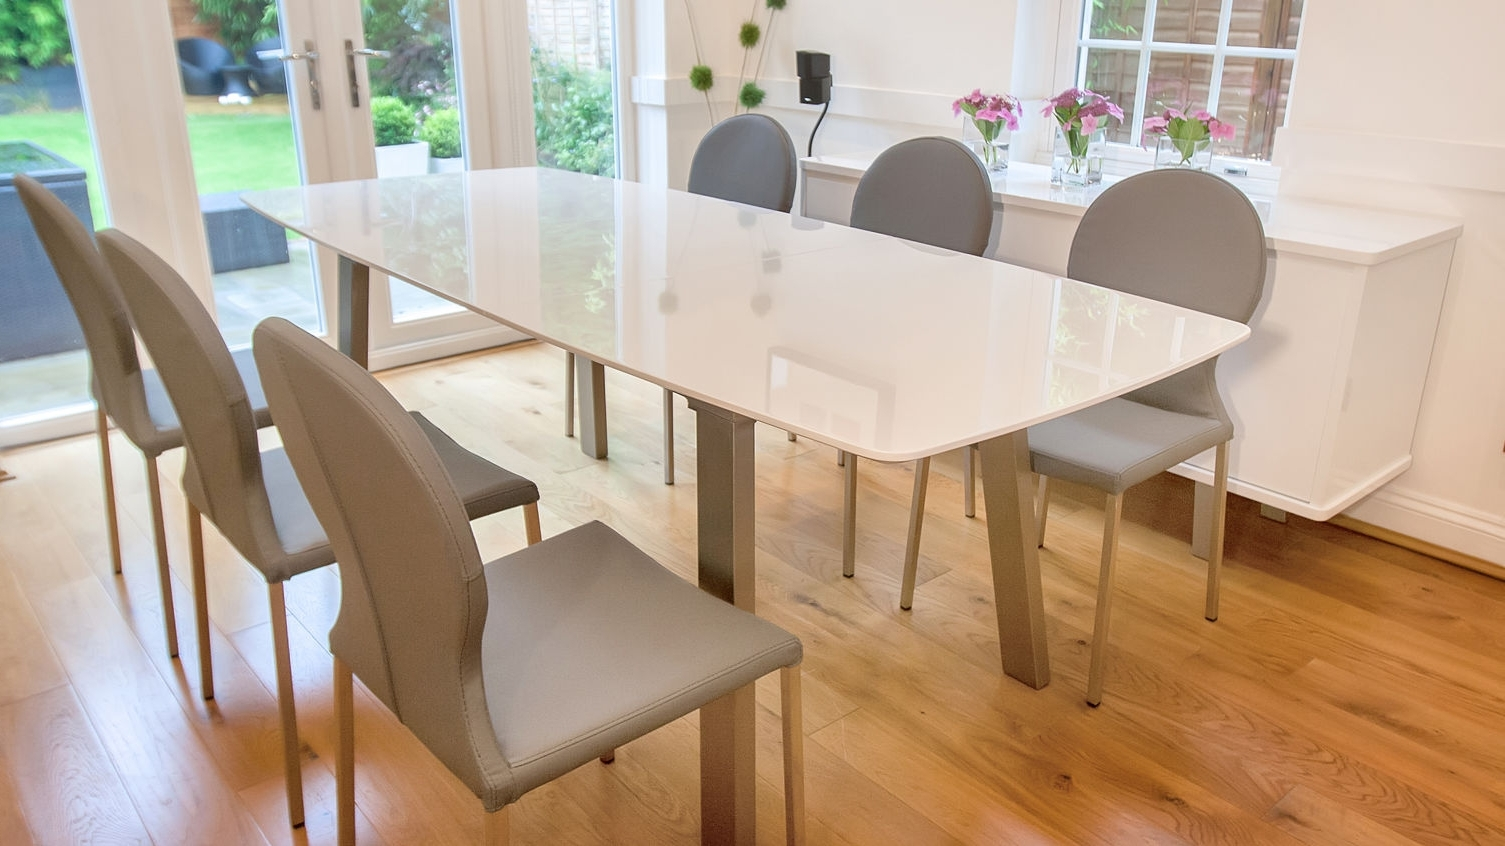 Extending Dining Room Tables And Chairs Dining Room Chair Slipcovers Intended For Most Up To Date Extending Dining Table And Chairs (View 14 of 25)